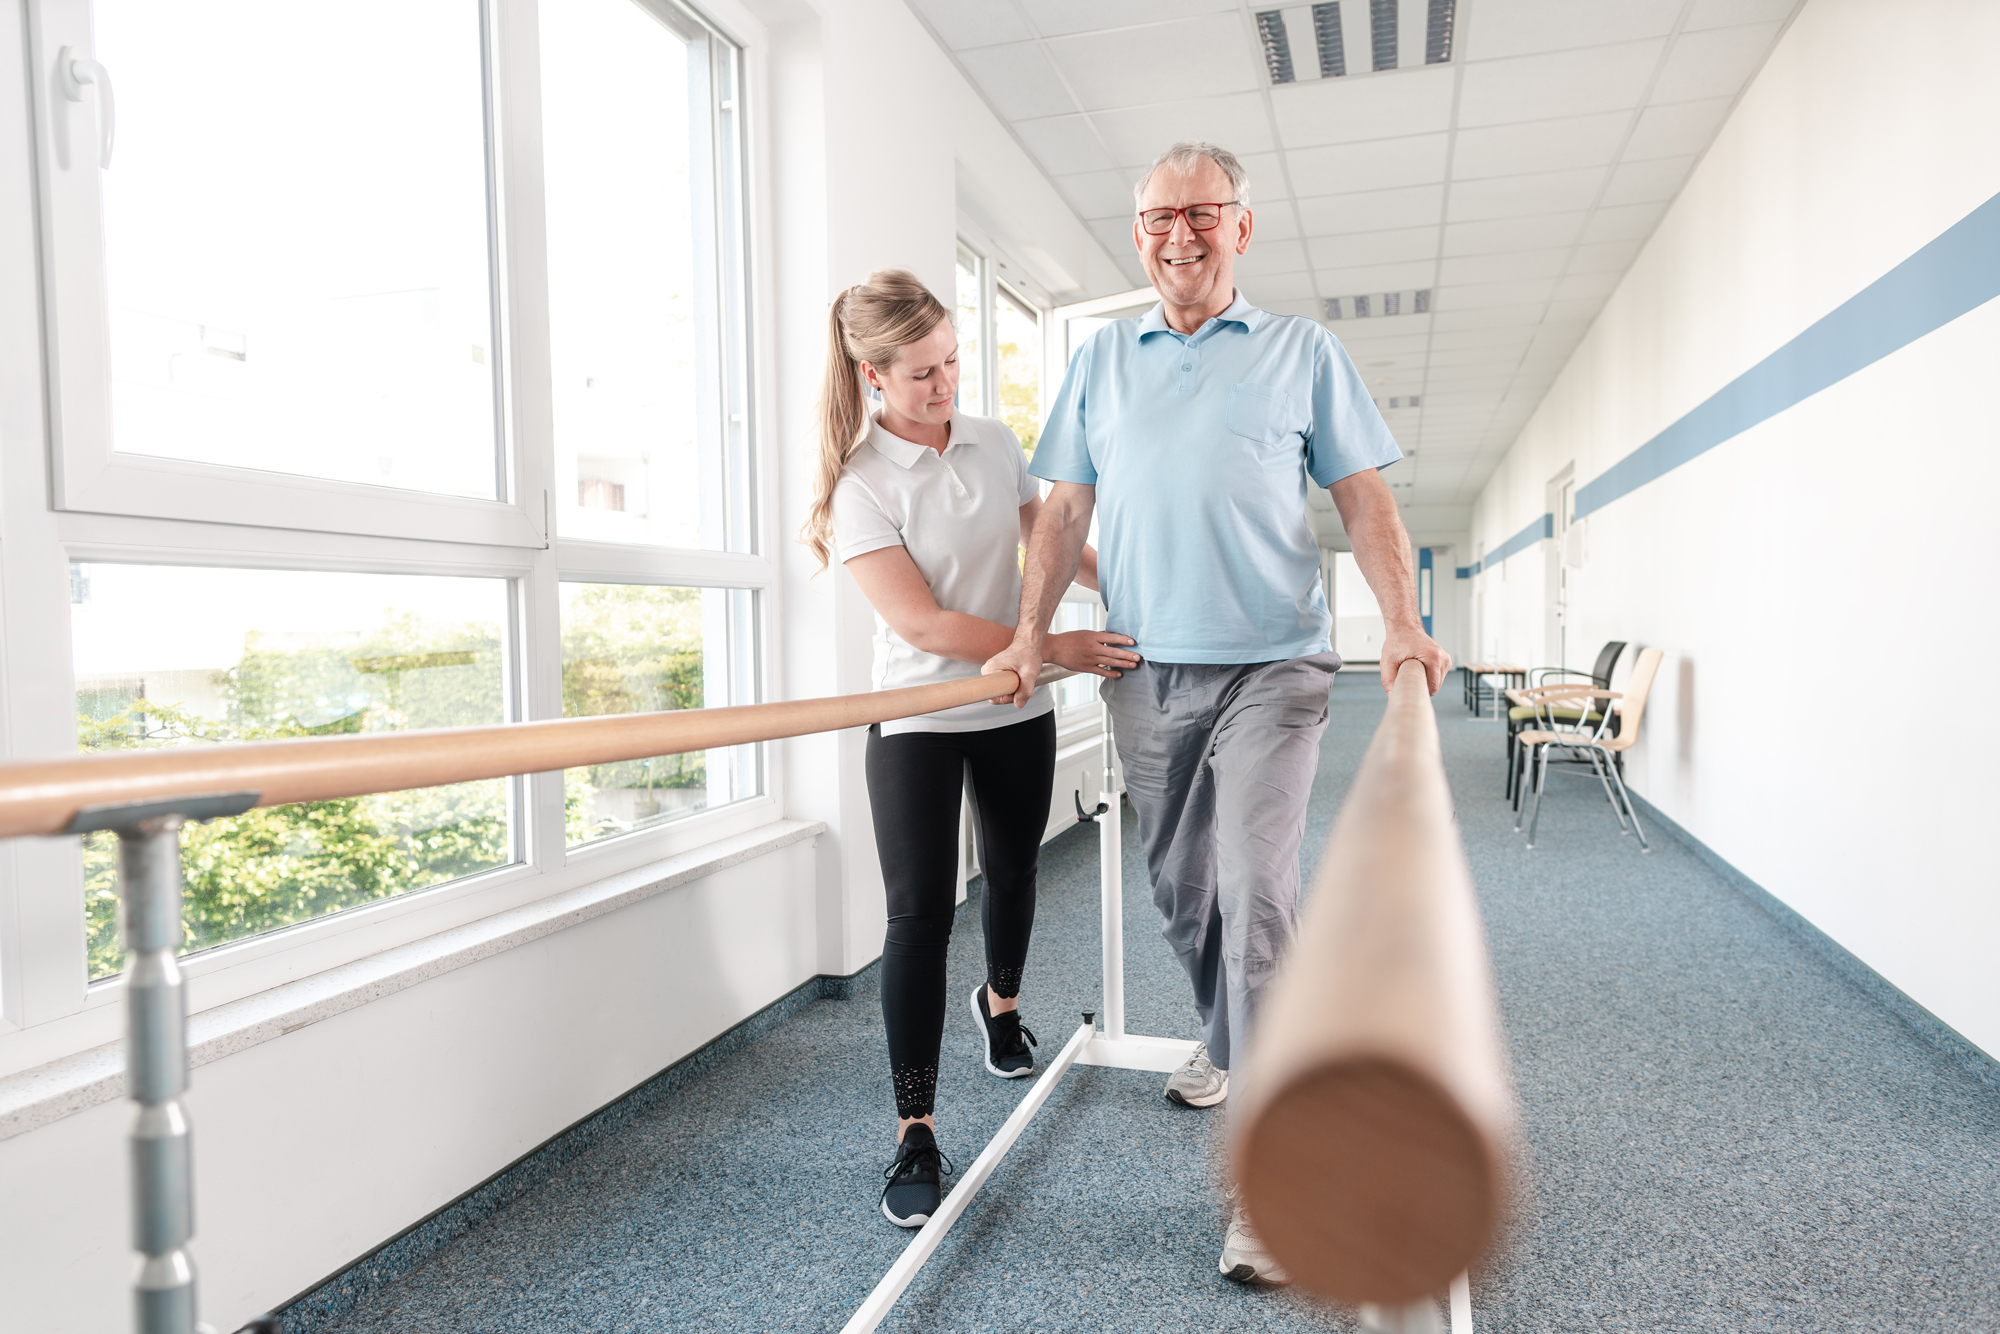 What Sort of Insurance Will Cover Physical Therapists?